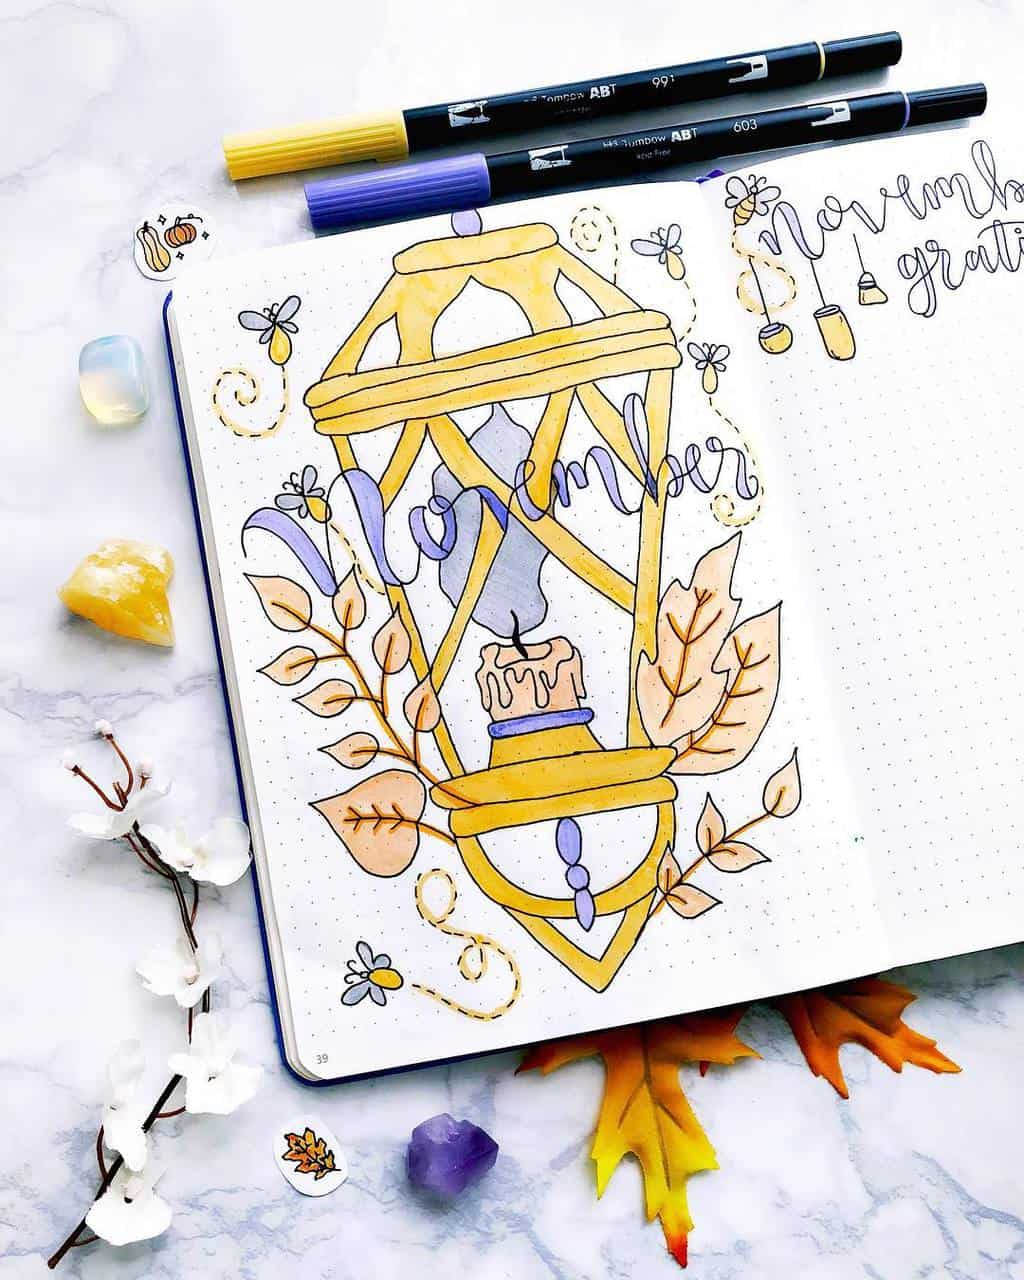 Fall Bullet Journal Theme Inspirations - cover page by @plan.tful | Masha Plans